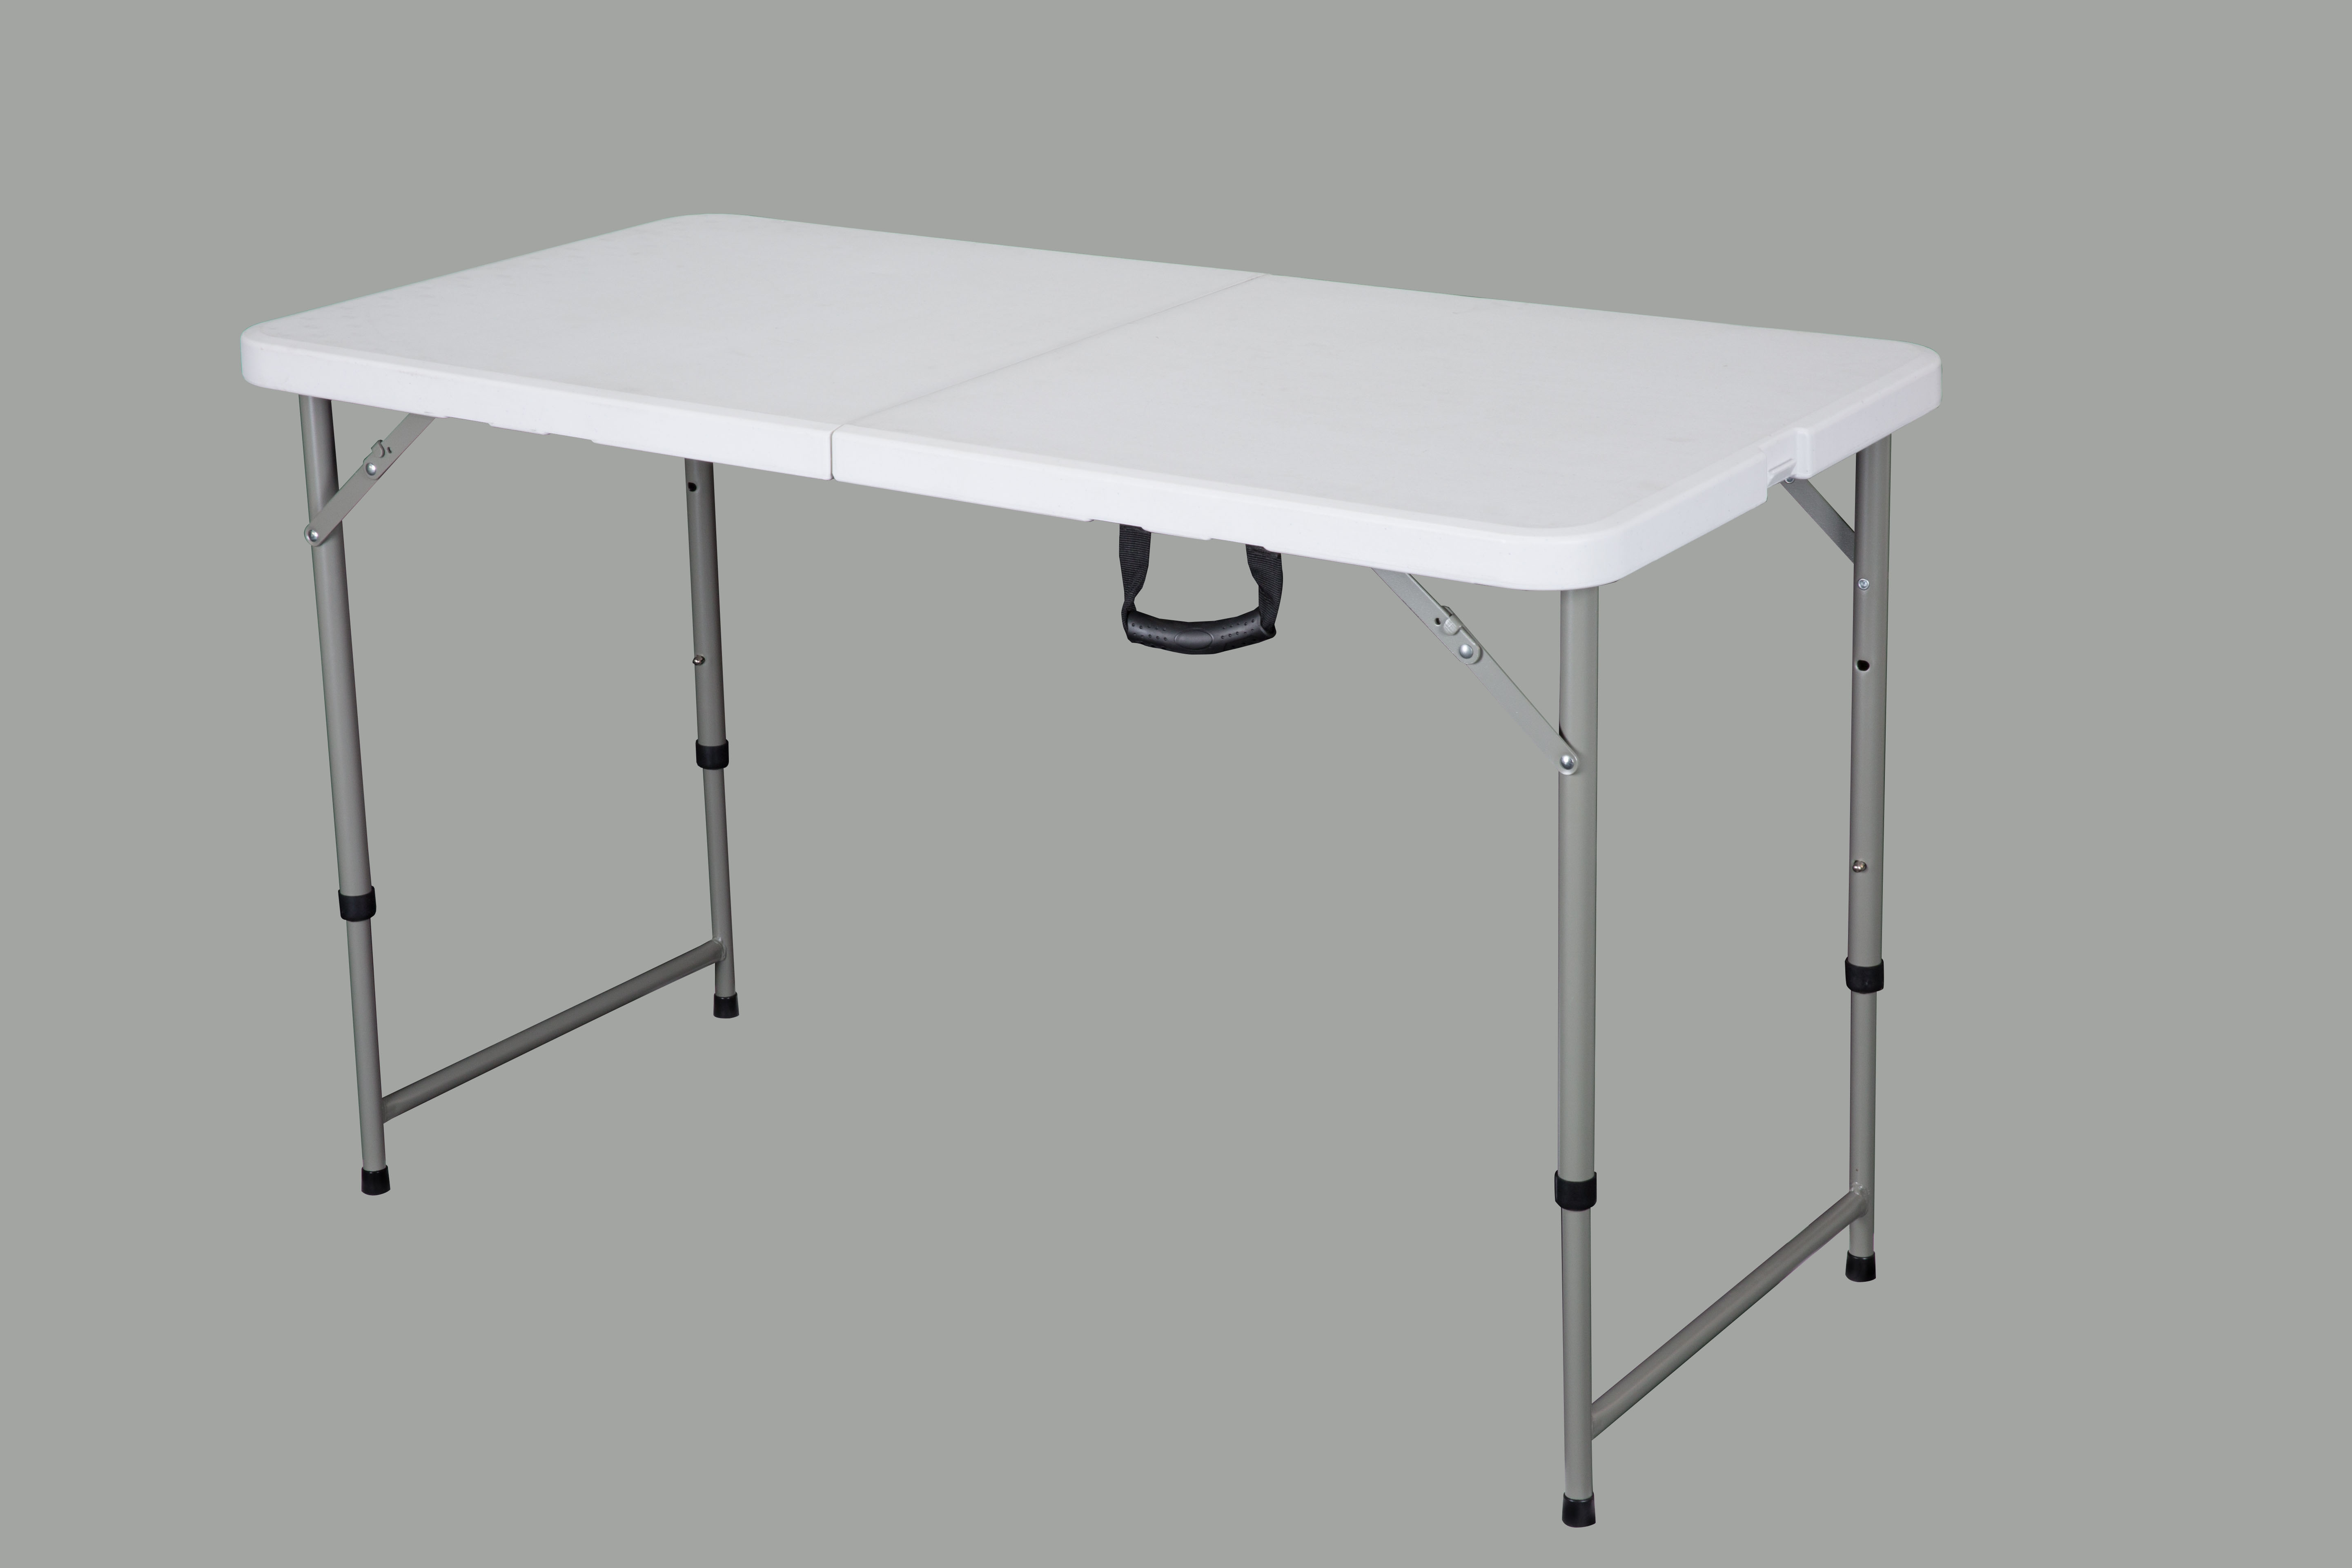 Light weight Restaurant table adjustable